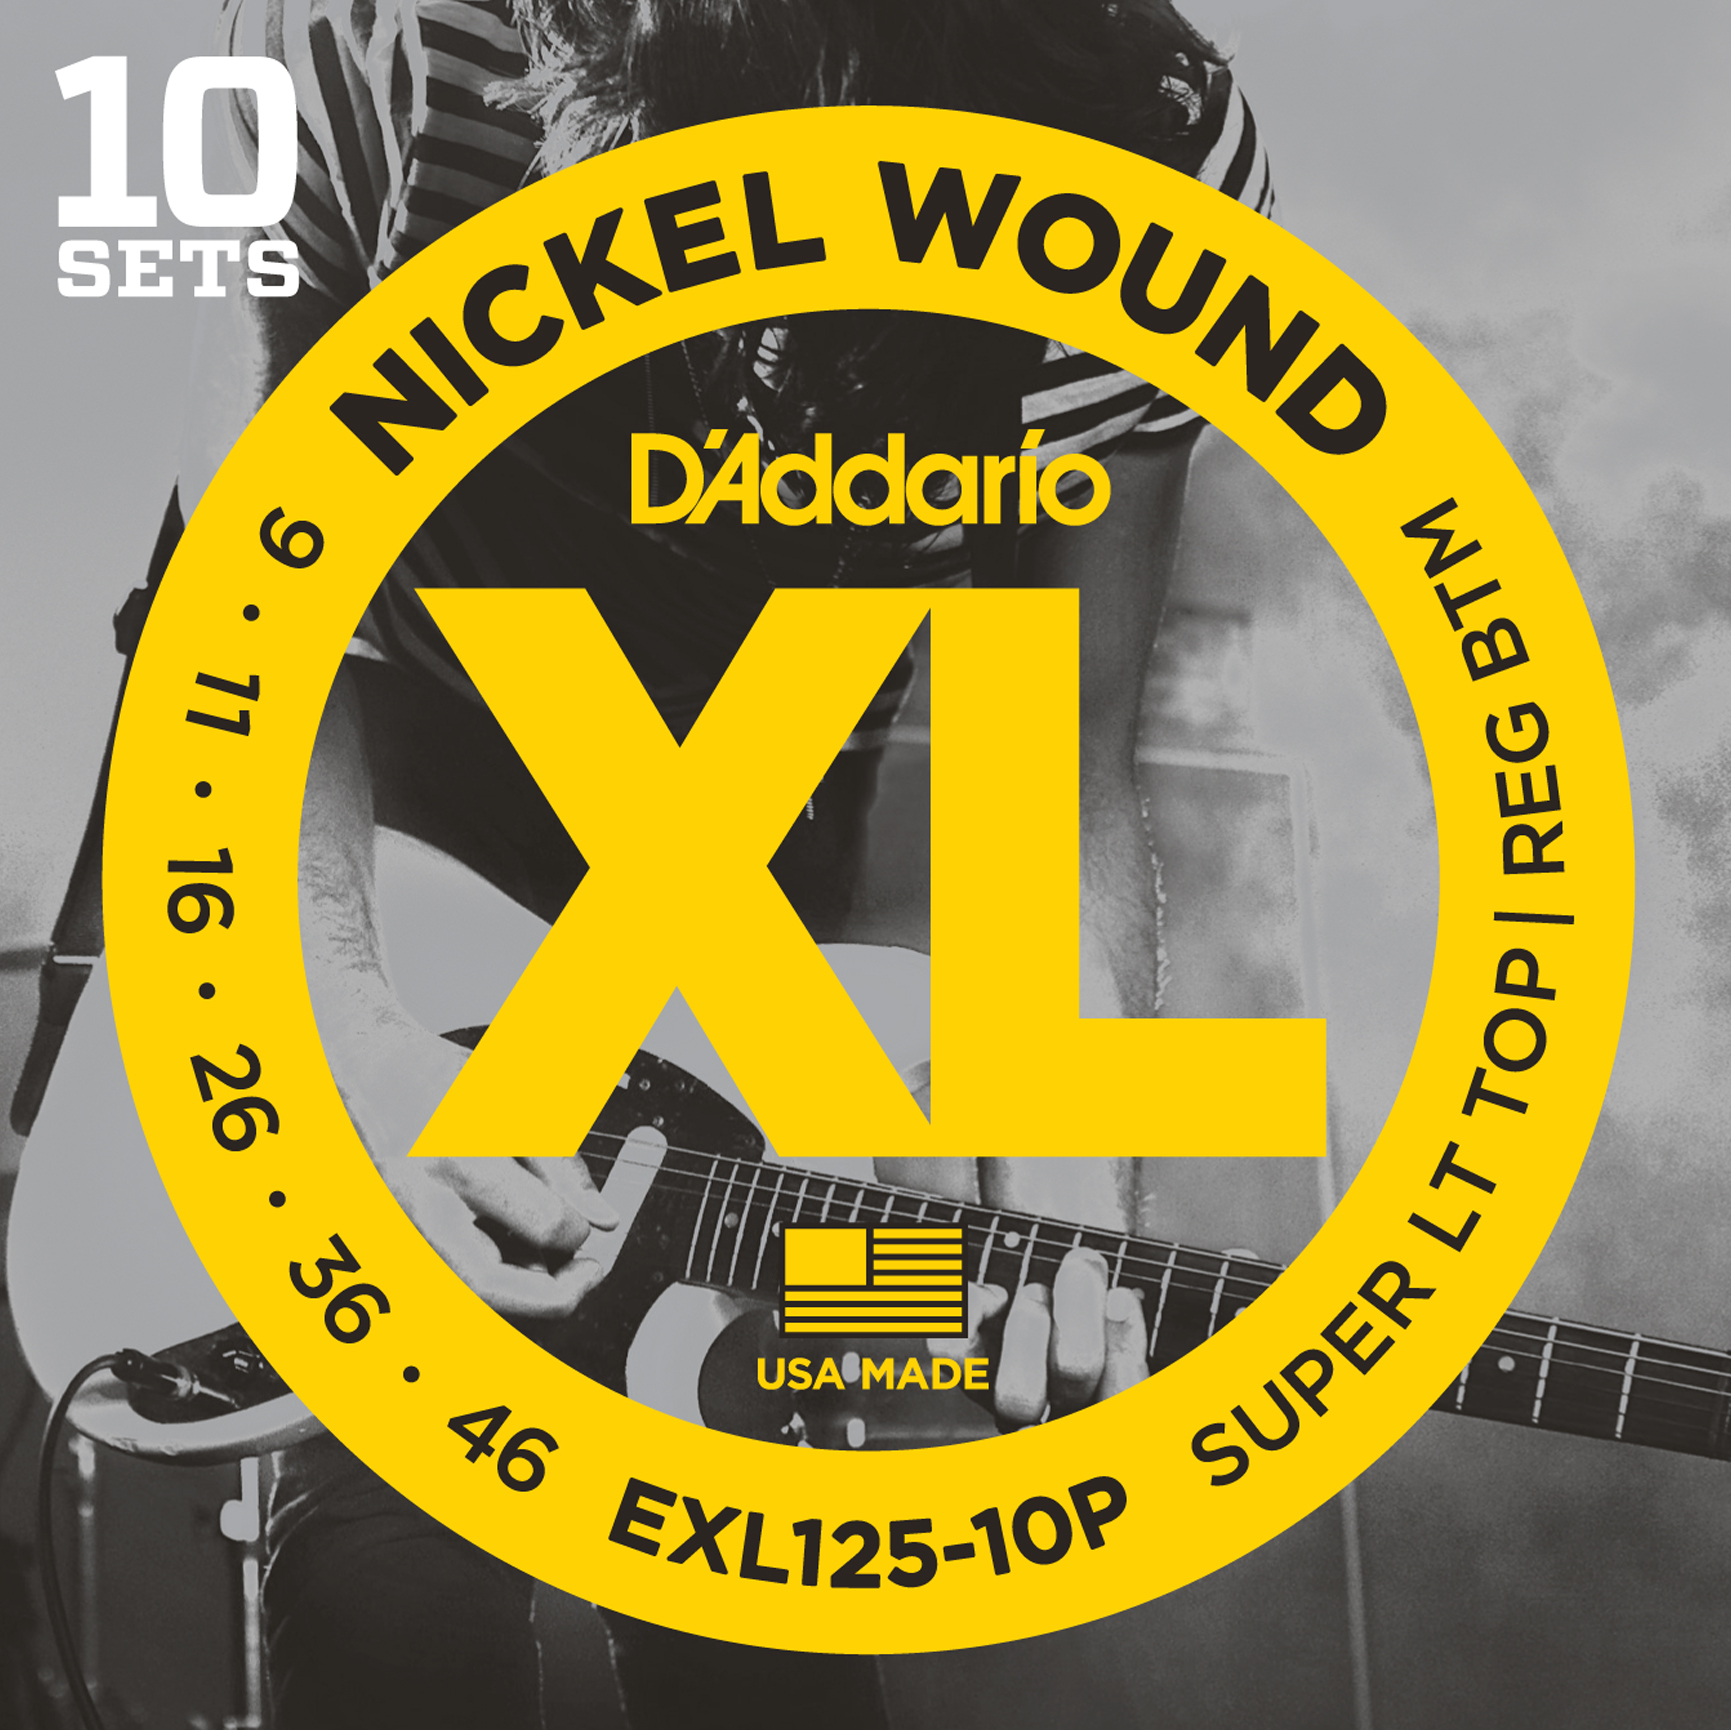 D'Addario EXL125-10P Nickel Wound Electric Guitar Strings, Super Light Top/Regul...